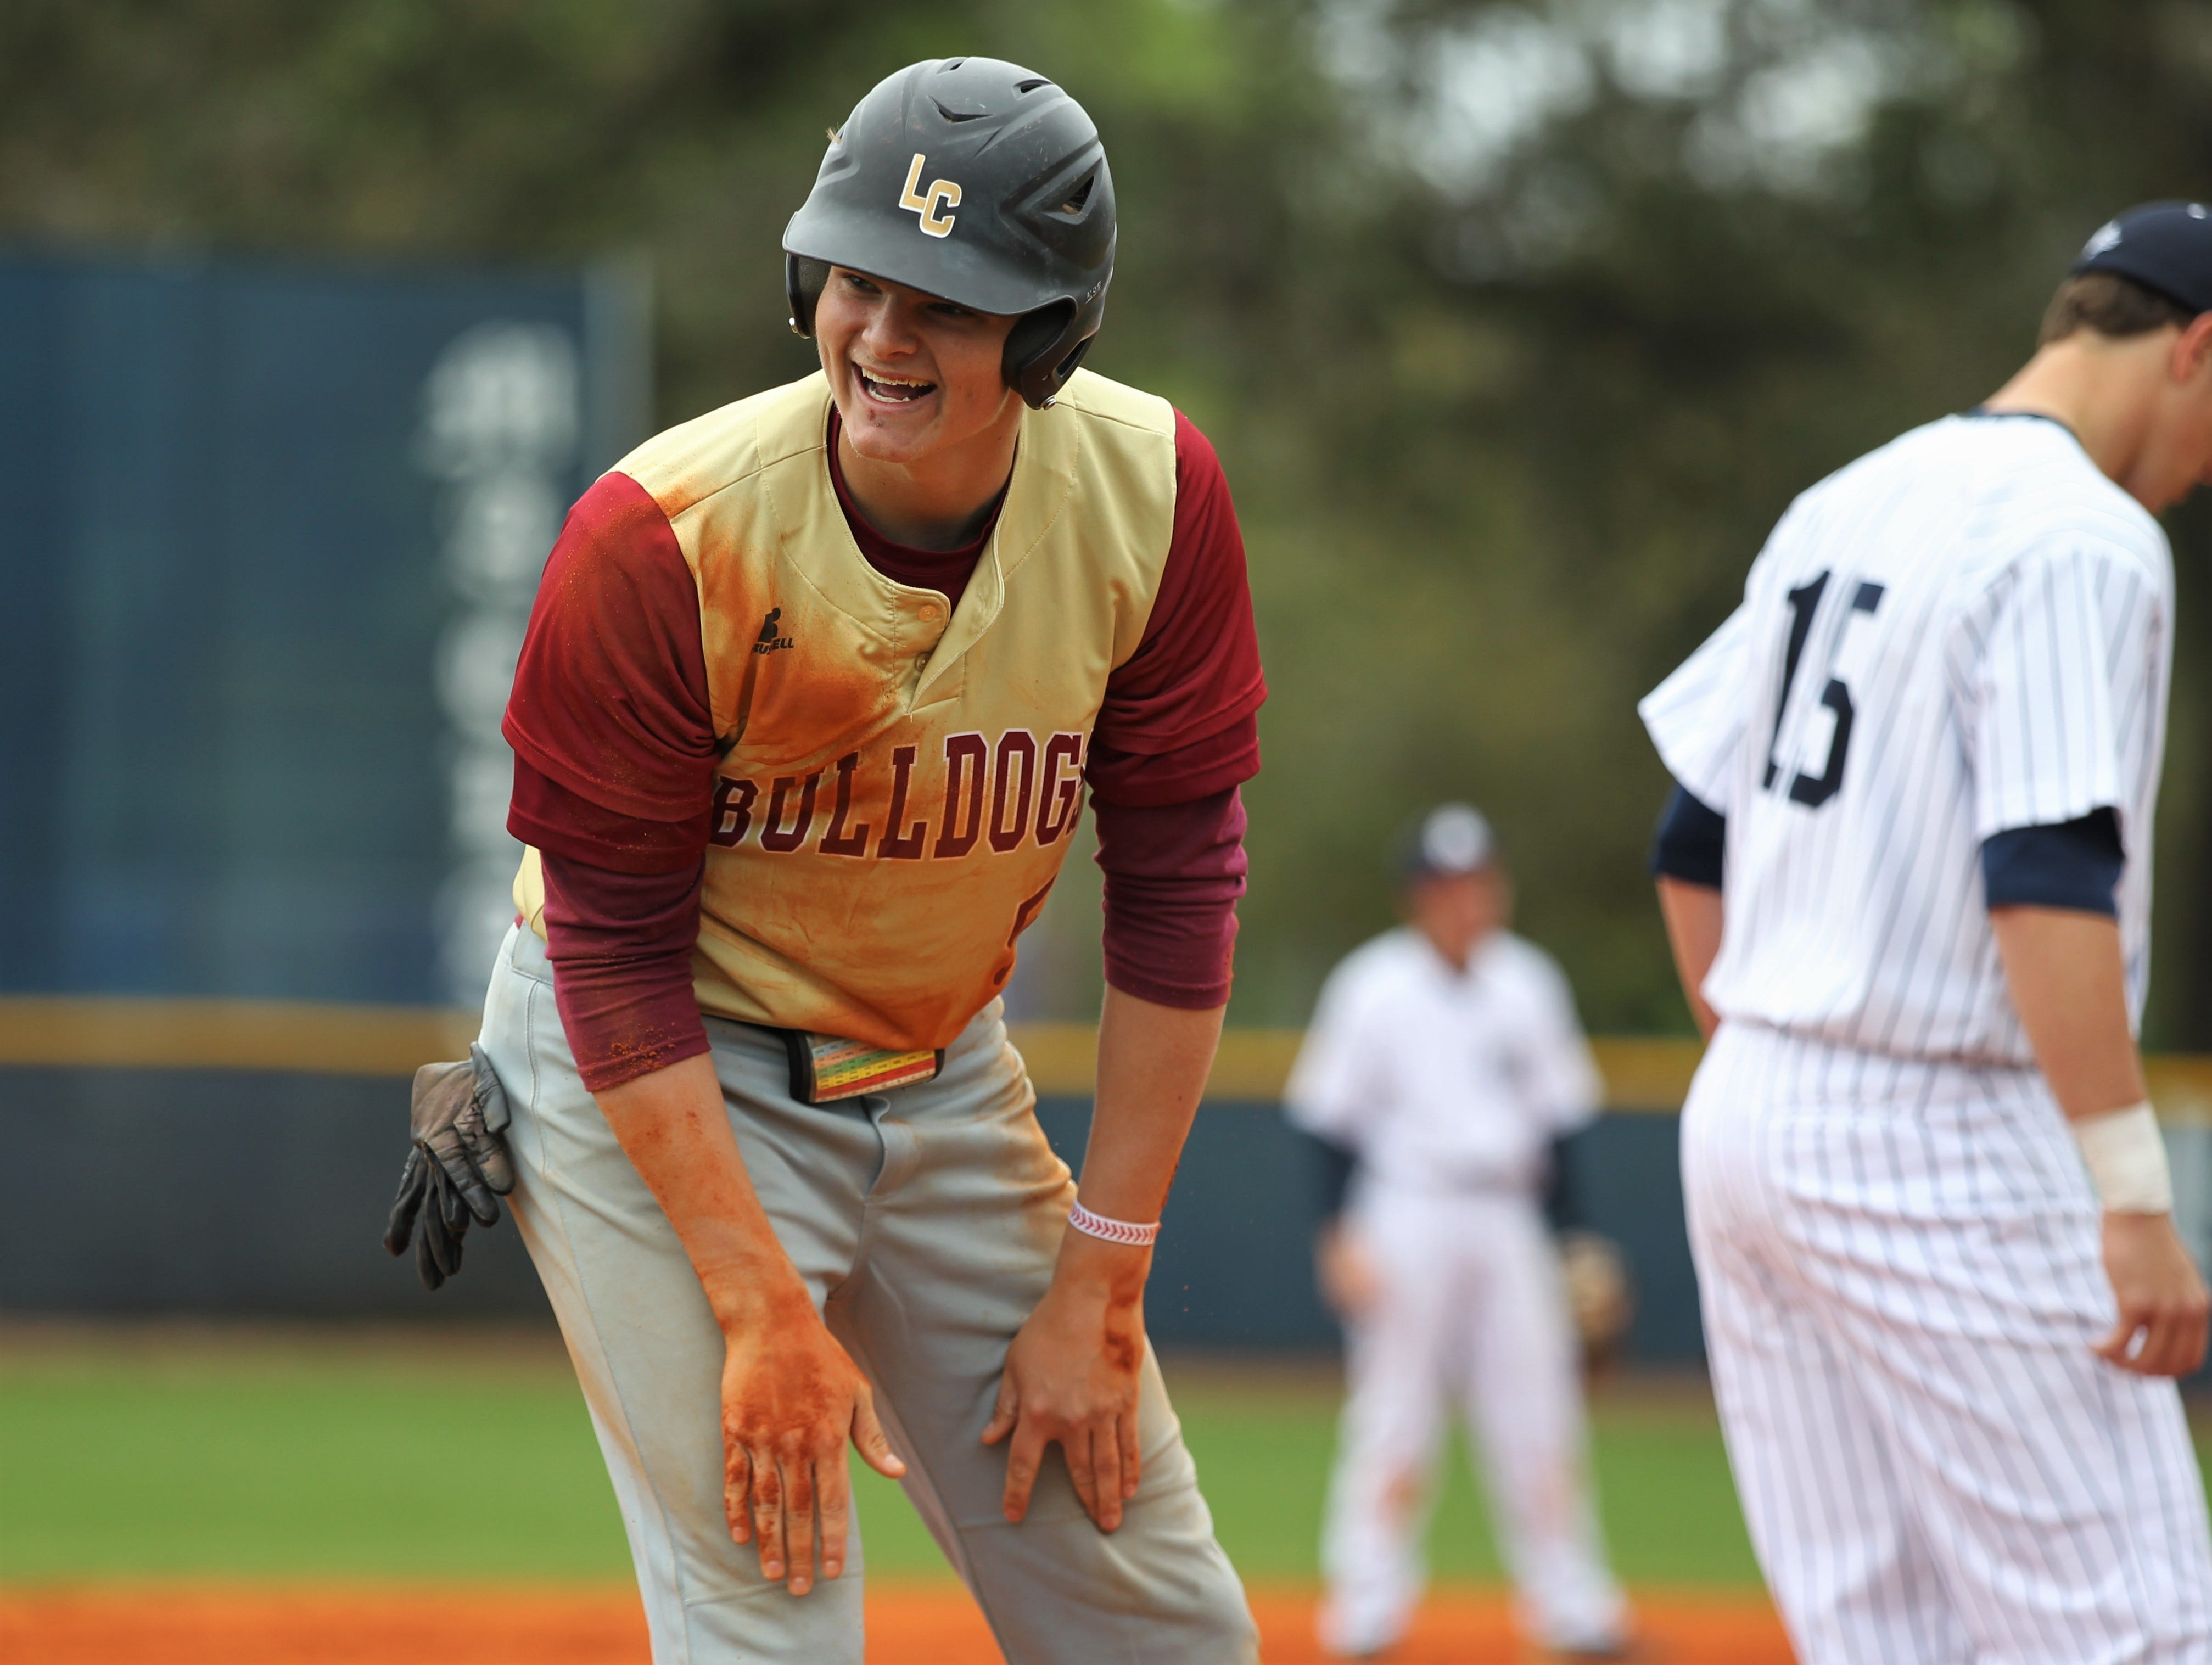 Liberty County senior Brice Dillmore smiles at his coach after sliding into third base. Liberty County's baseball team went on the road to beat Maclay 8-2 on Saturday, March 16, 2019. The Bulldogs played their first game following their head coach Corey Crum's tragic death six days ago.